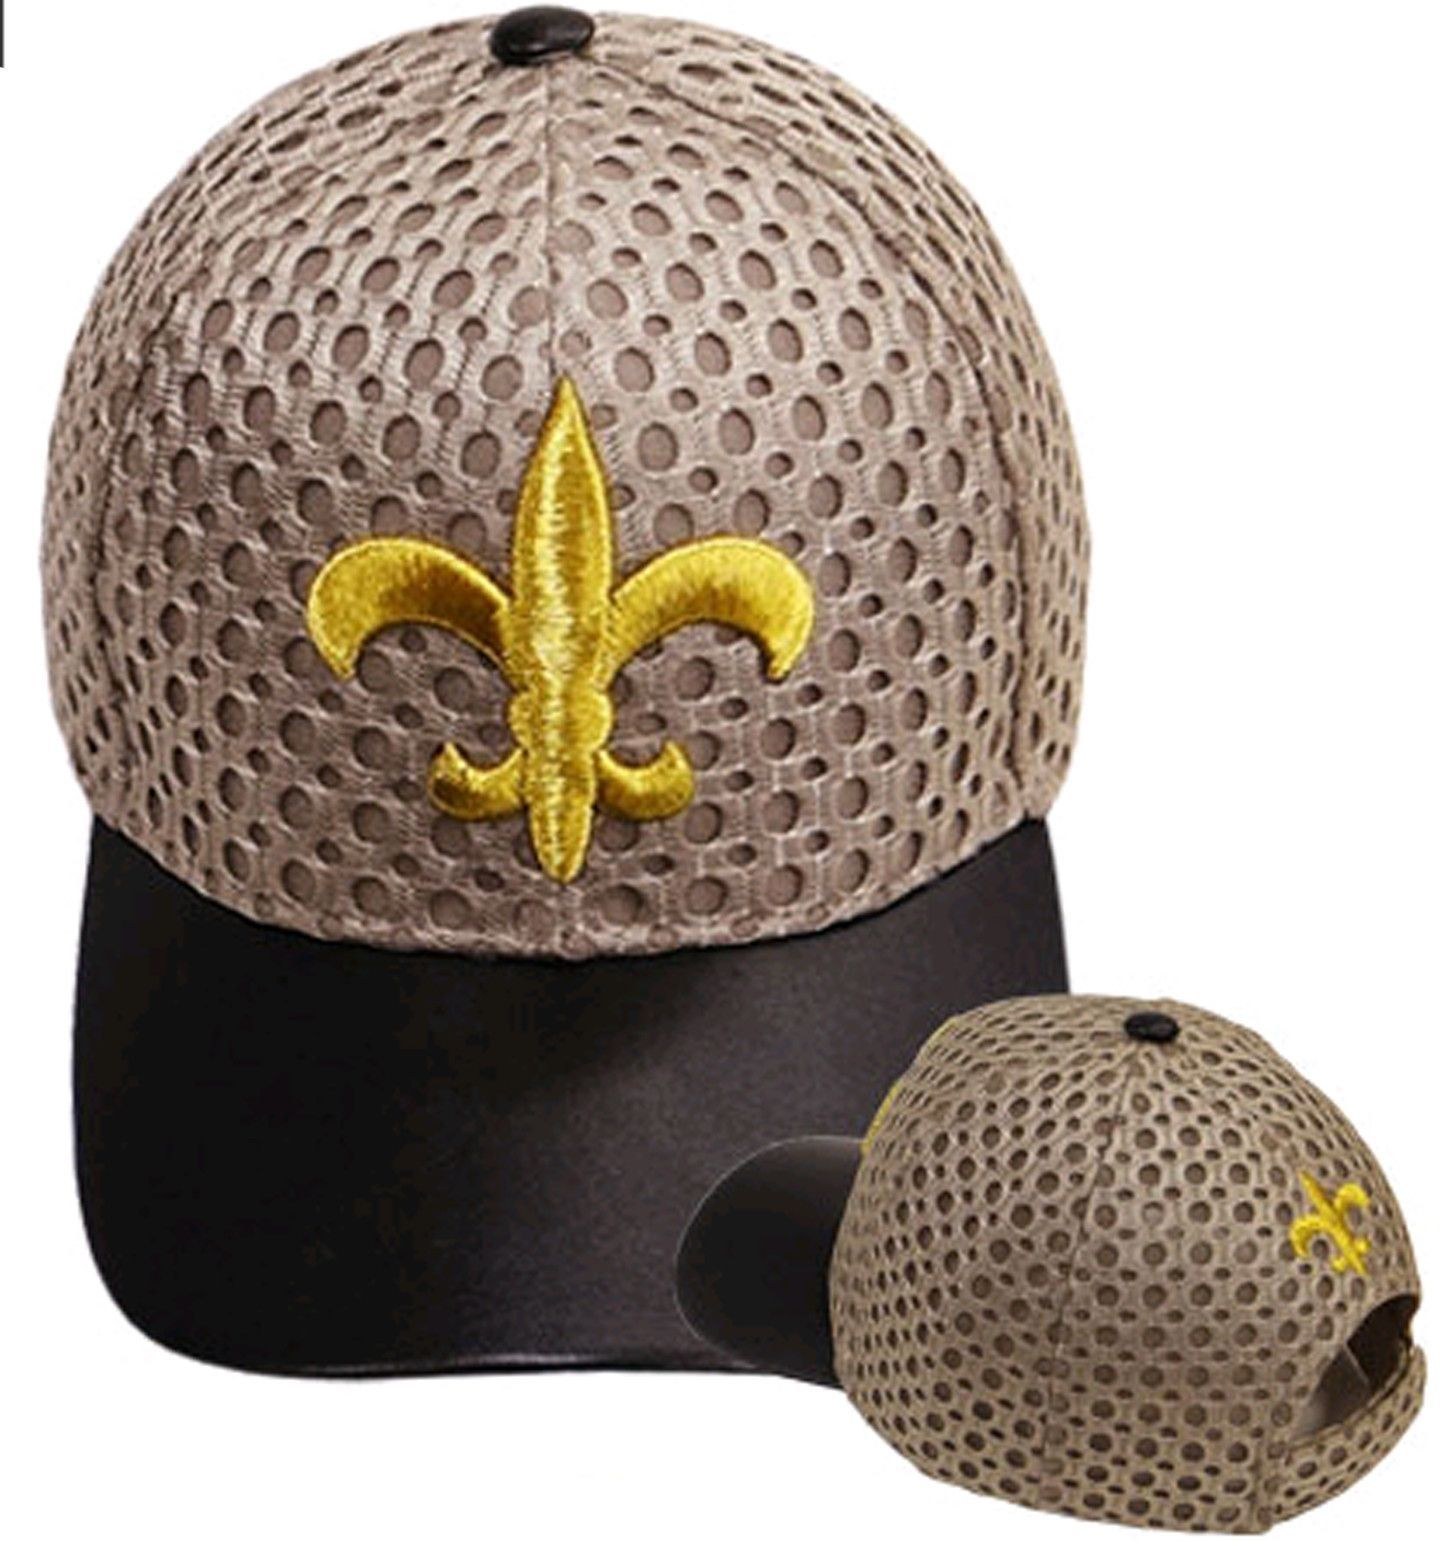 New Orleans Saints Baseball Cap Fleur De Lis Black and Gold Air Mesh and  Leather Hat NFL Football Team 5ad4dbe3604d